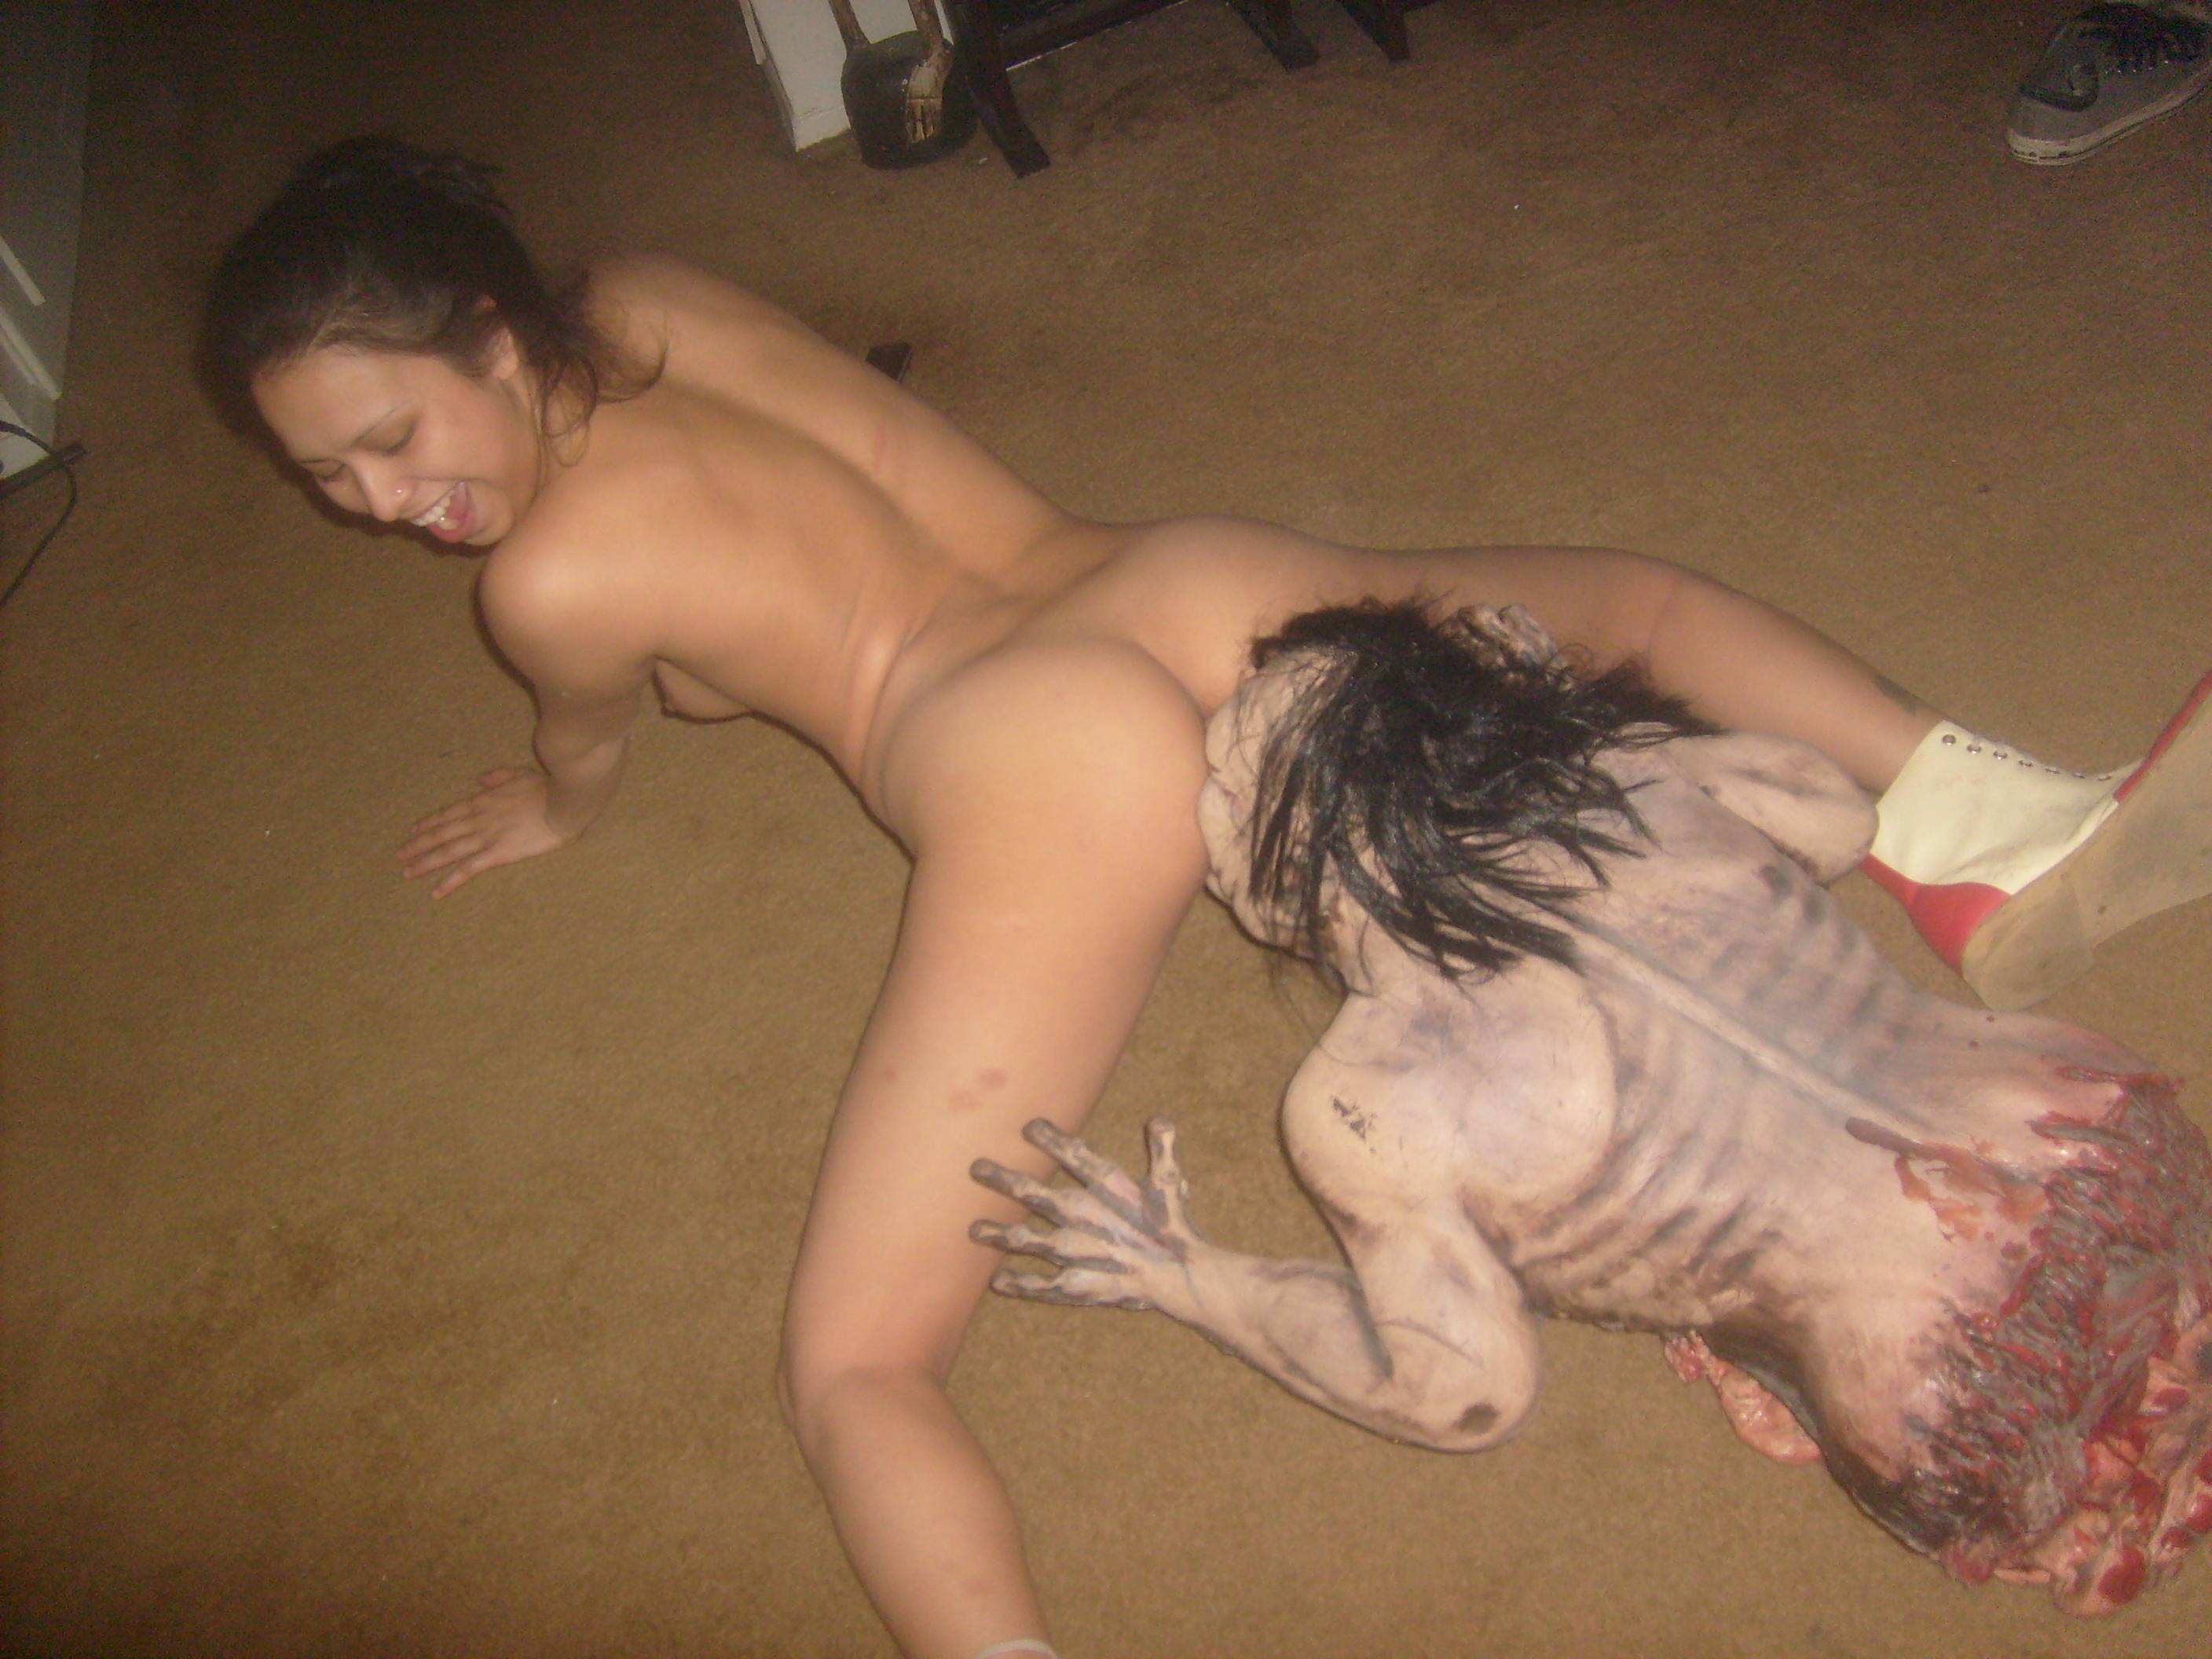 Zombie nude sex pic pron private slut